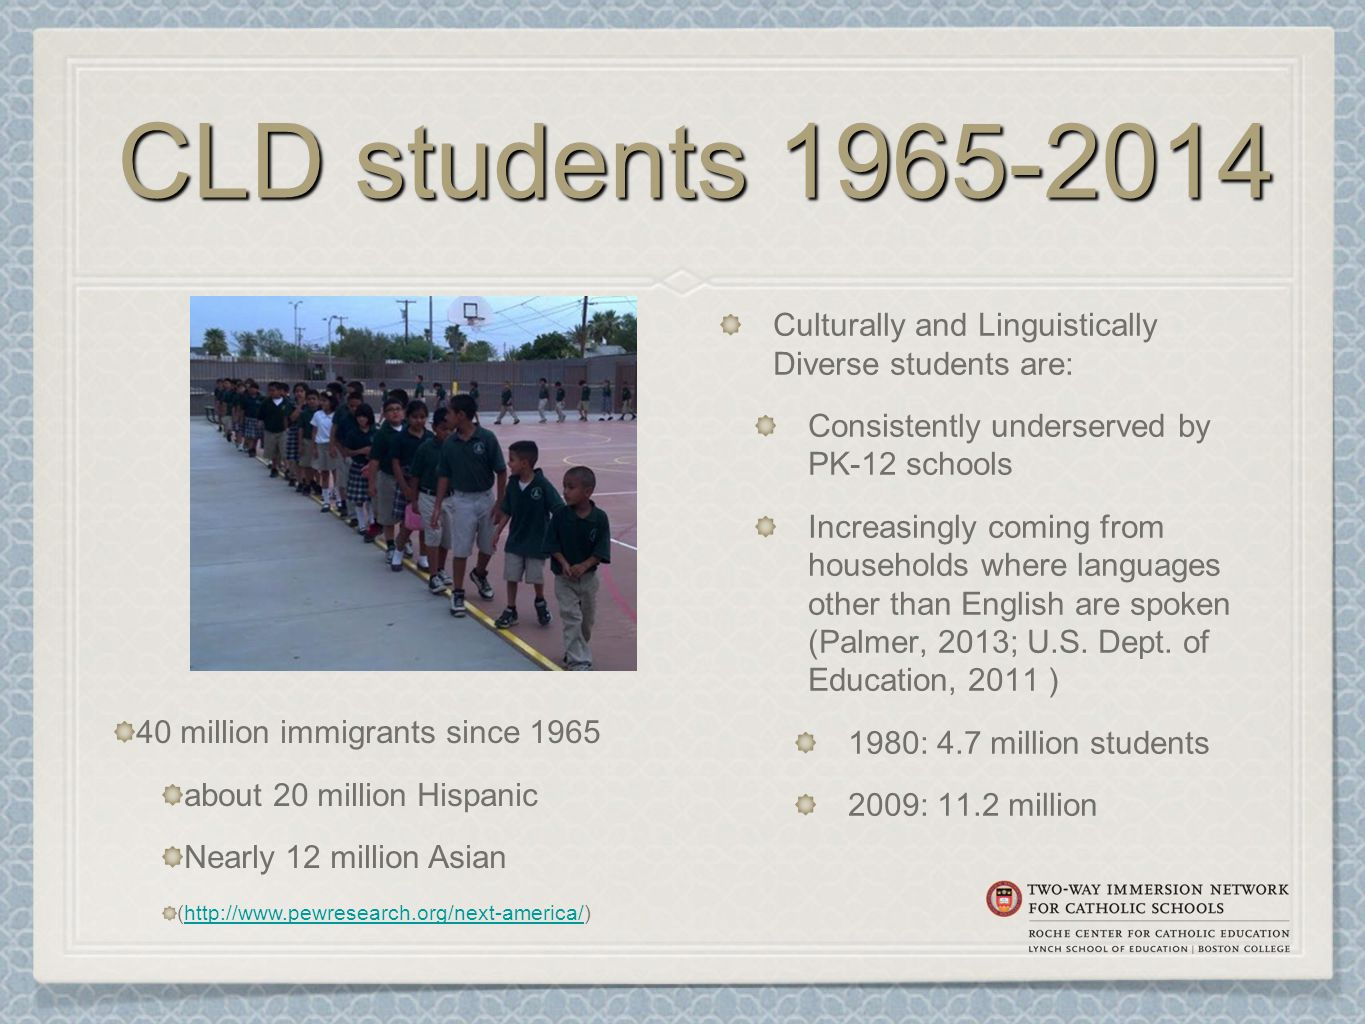 CLD students 1965-2014 Culturally and Linguistically Diverse students are: Consistently underserved by PK-12 schools Increasingly coming from households where languages other than English are spoken (Palmer, 2013; U.S.